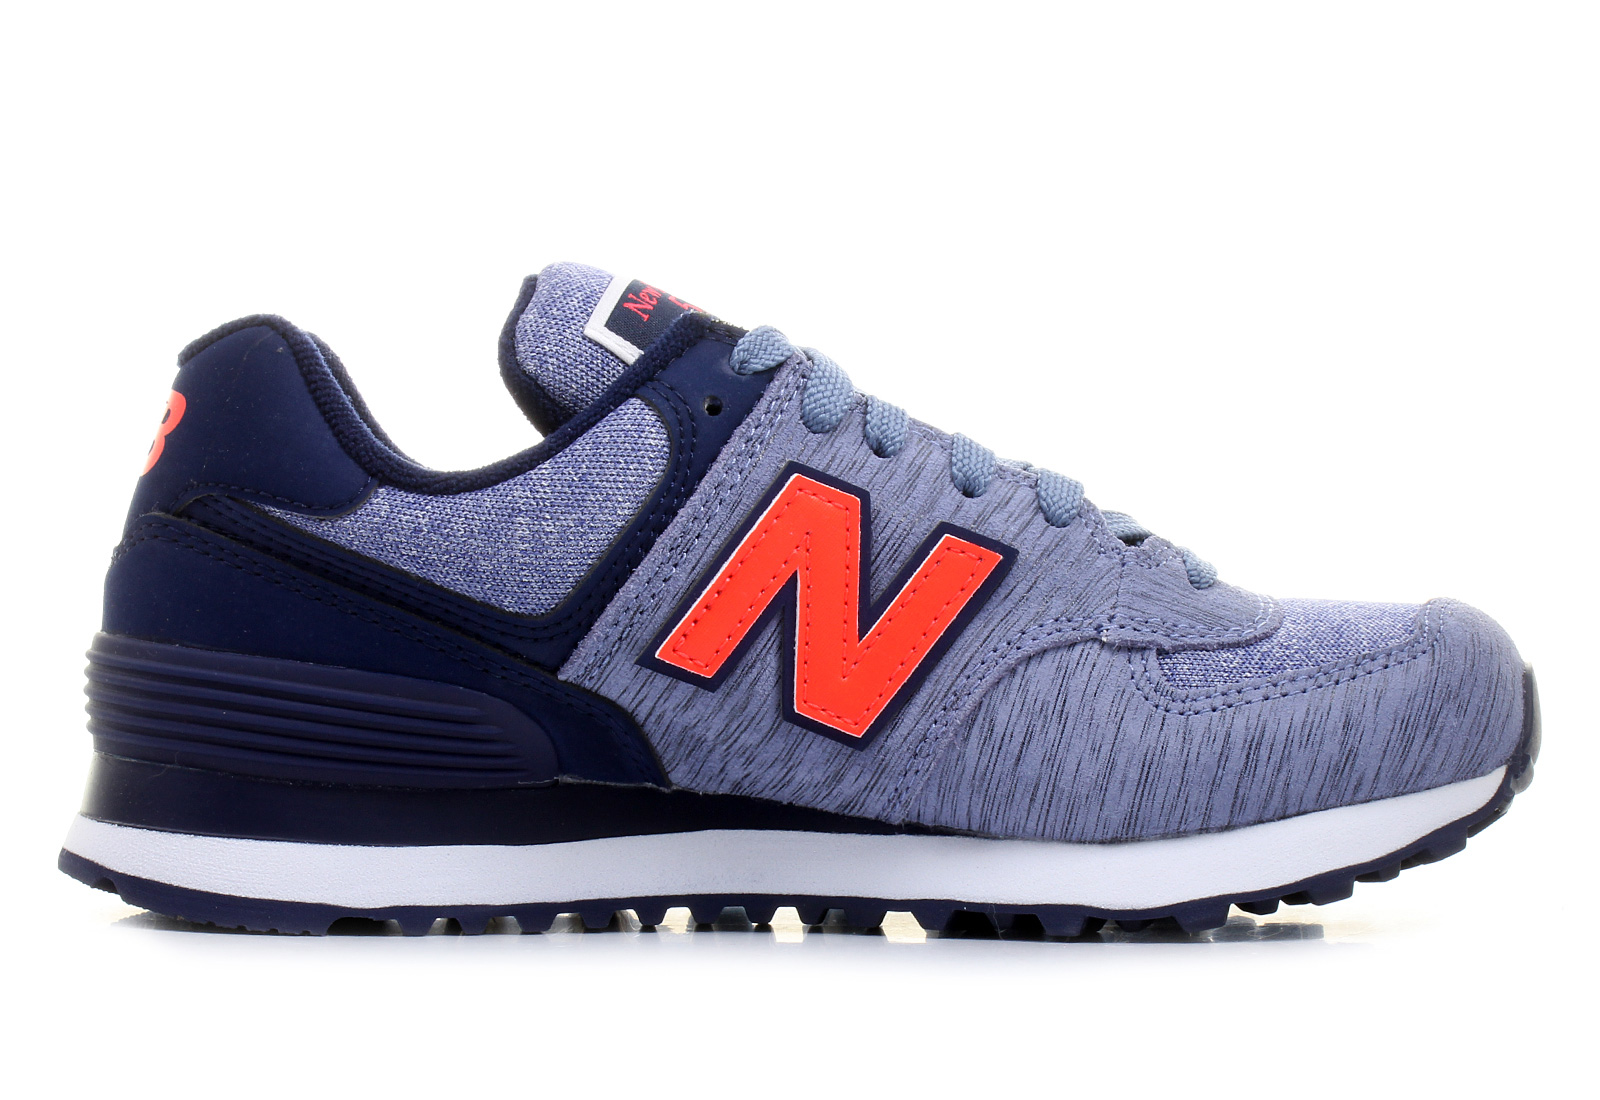 new balance shoes wl574 wl574wtc online shop for sneakers shoes and boots. Black Bedroom Furniture Sets. Home Design Ideas